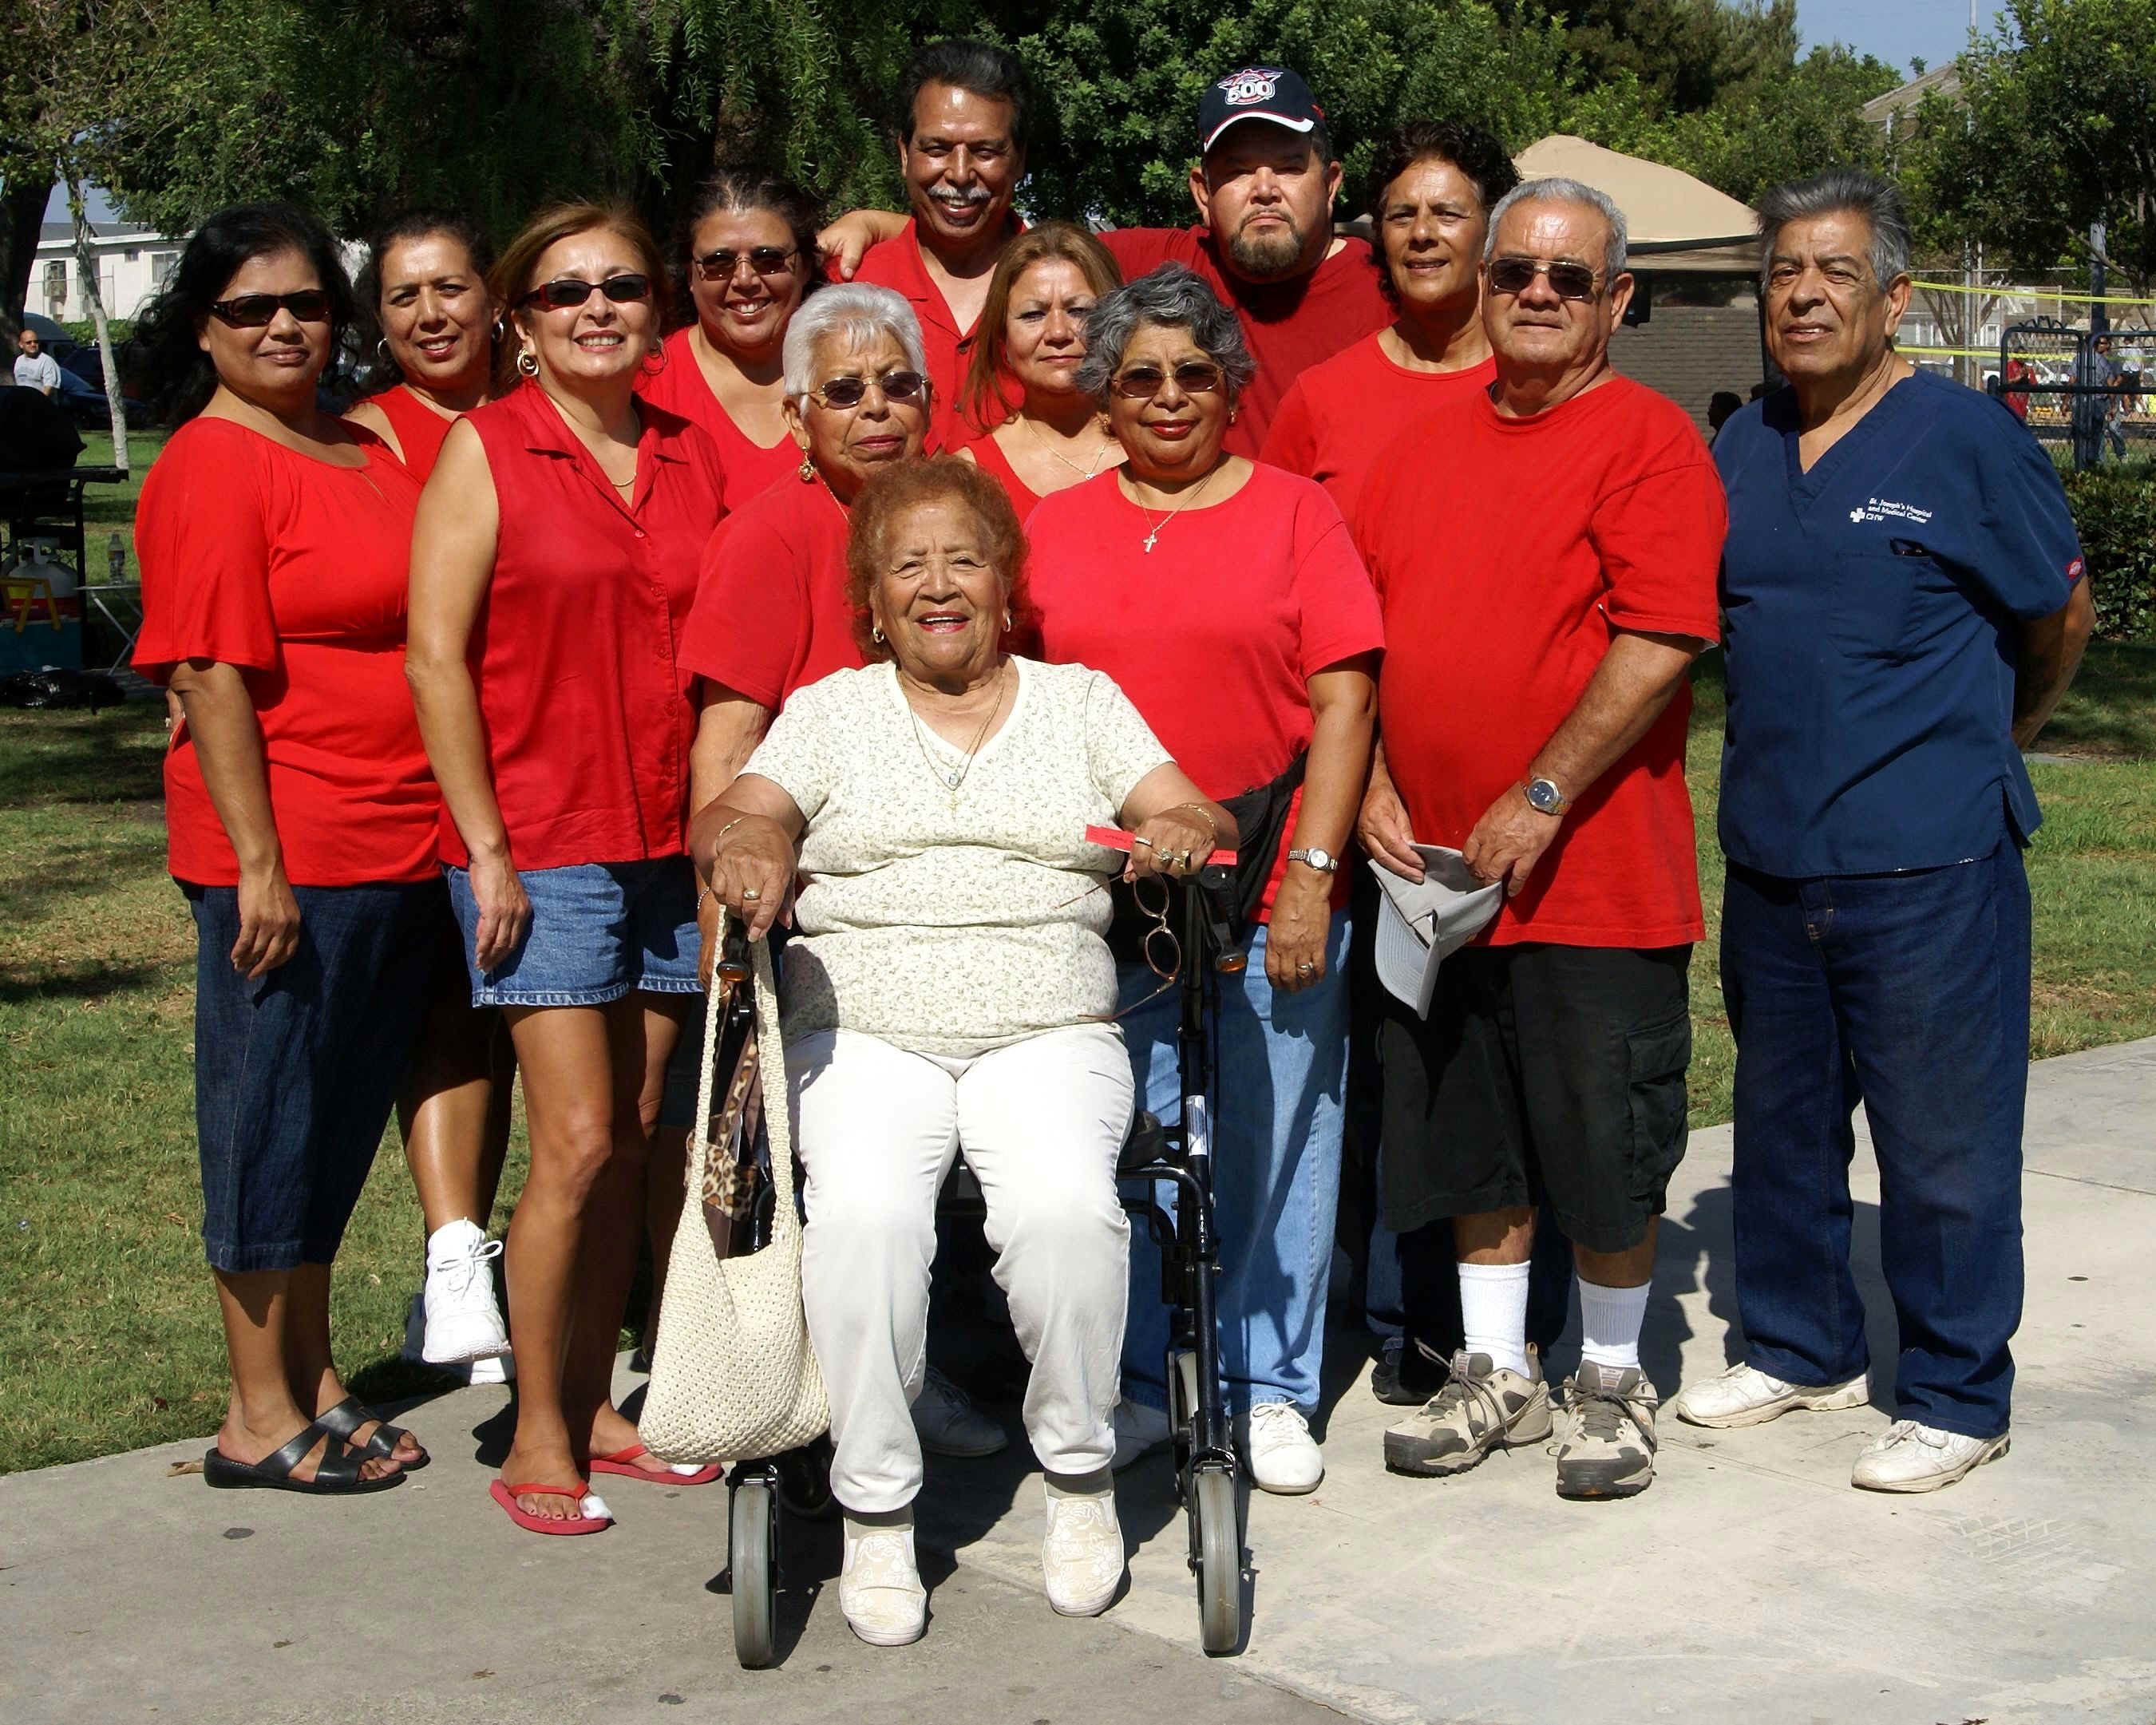 Somos Primos: Dedicated to Hispanic Heritage and Diversity Issues